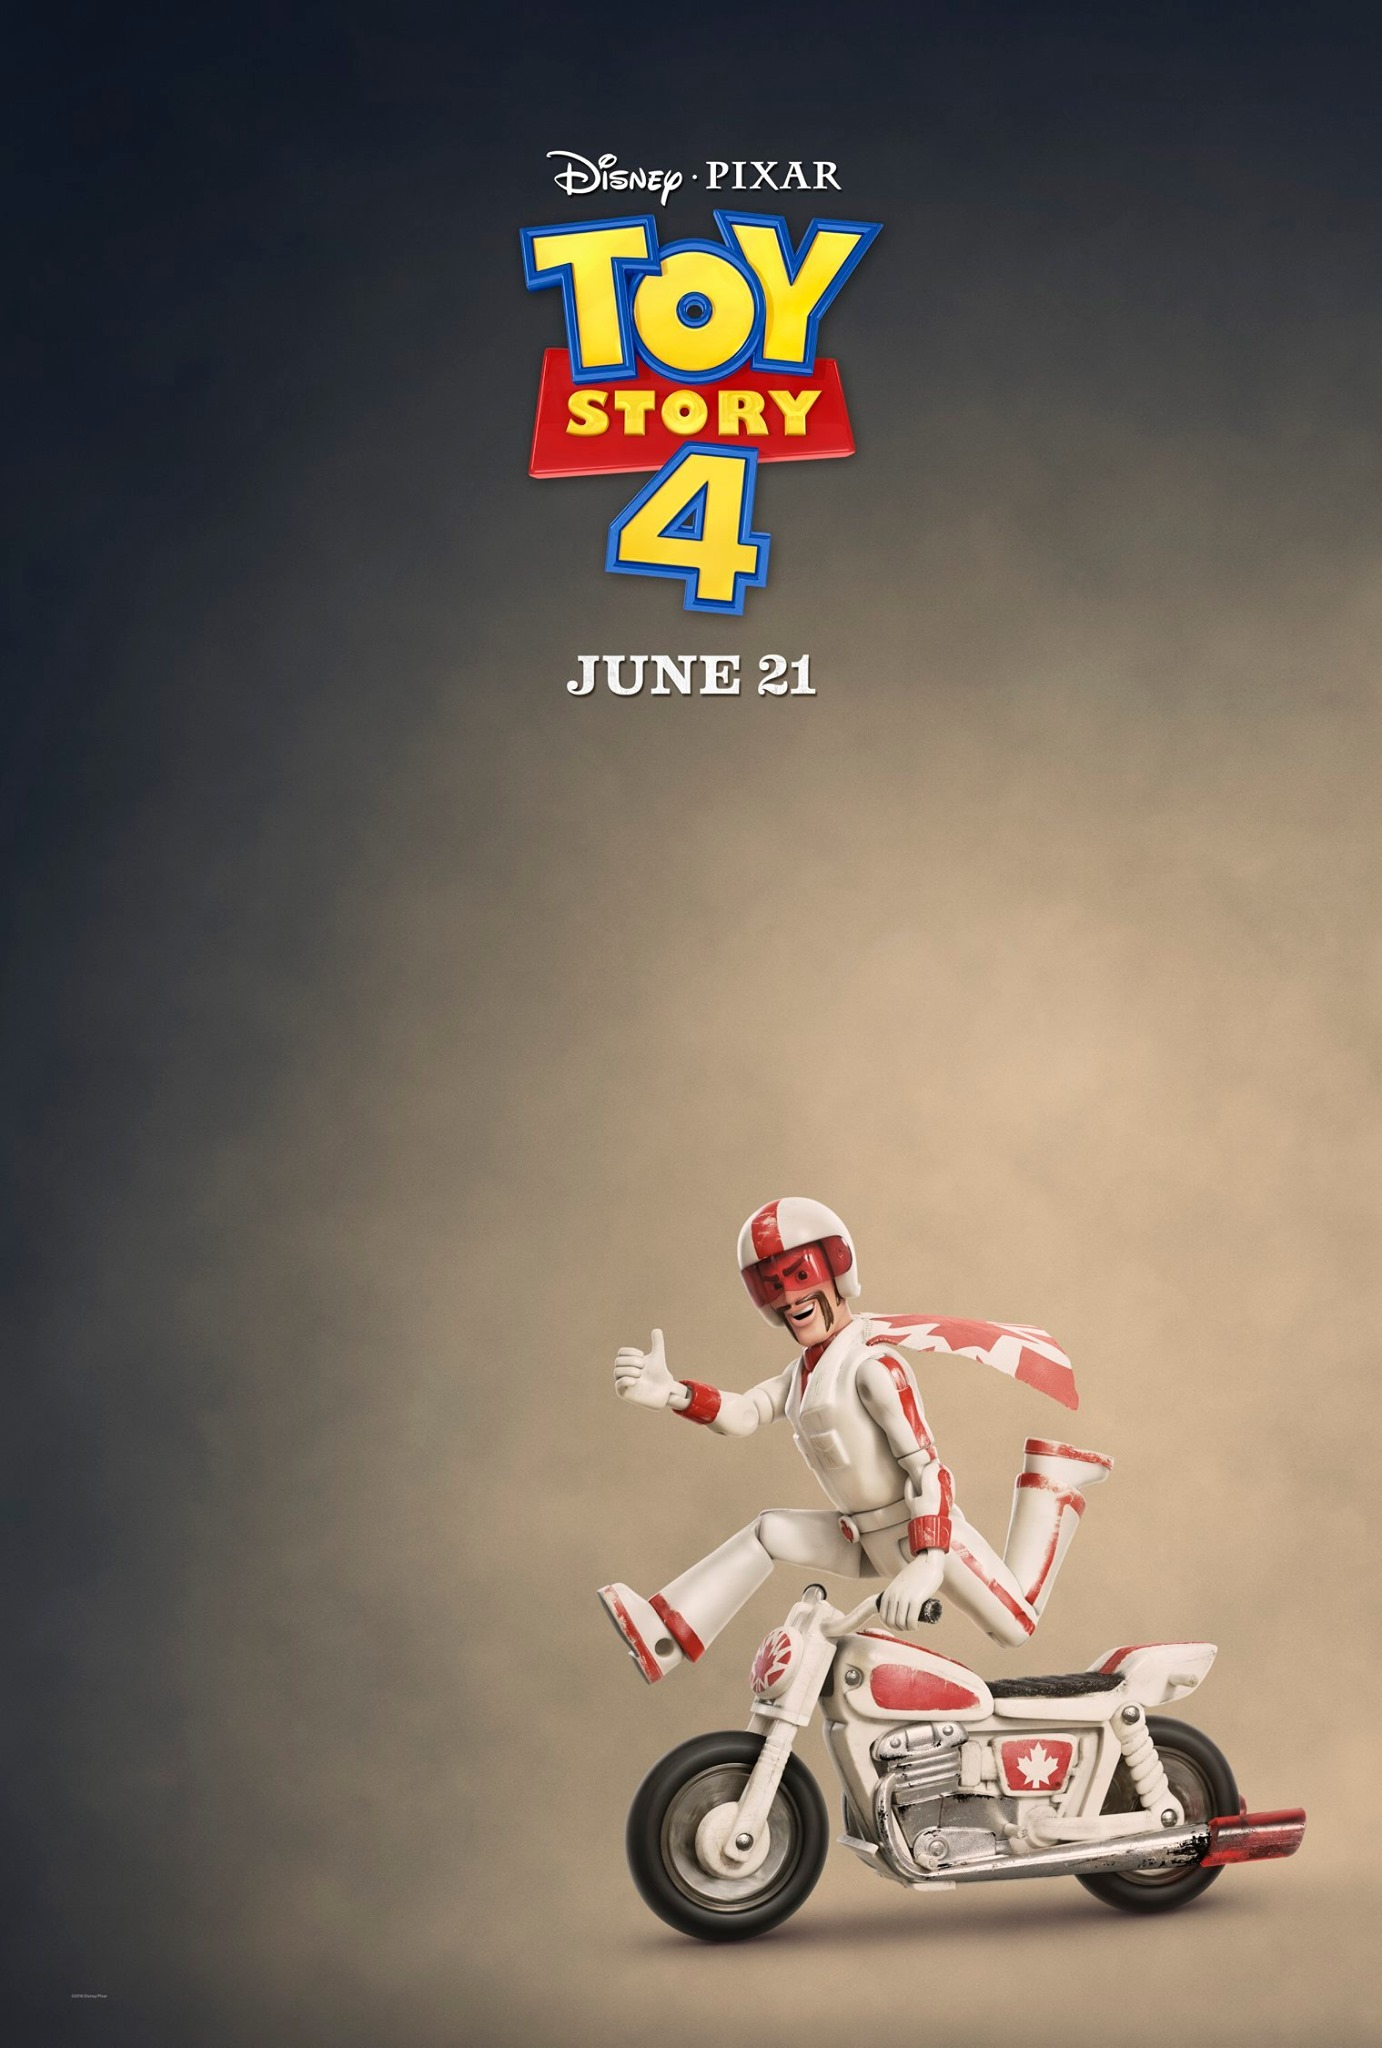 Toy Story 4 Character Posters